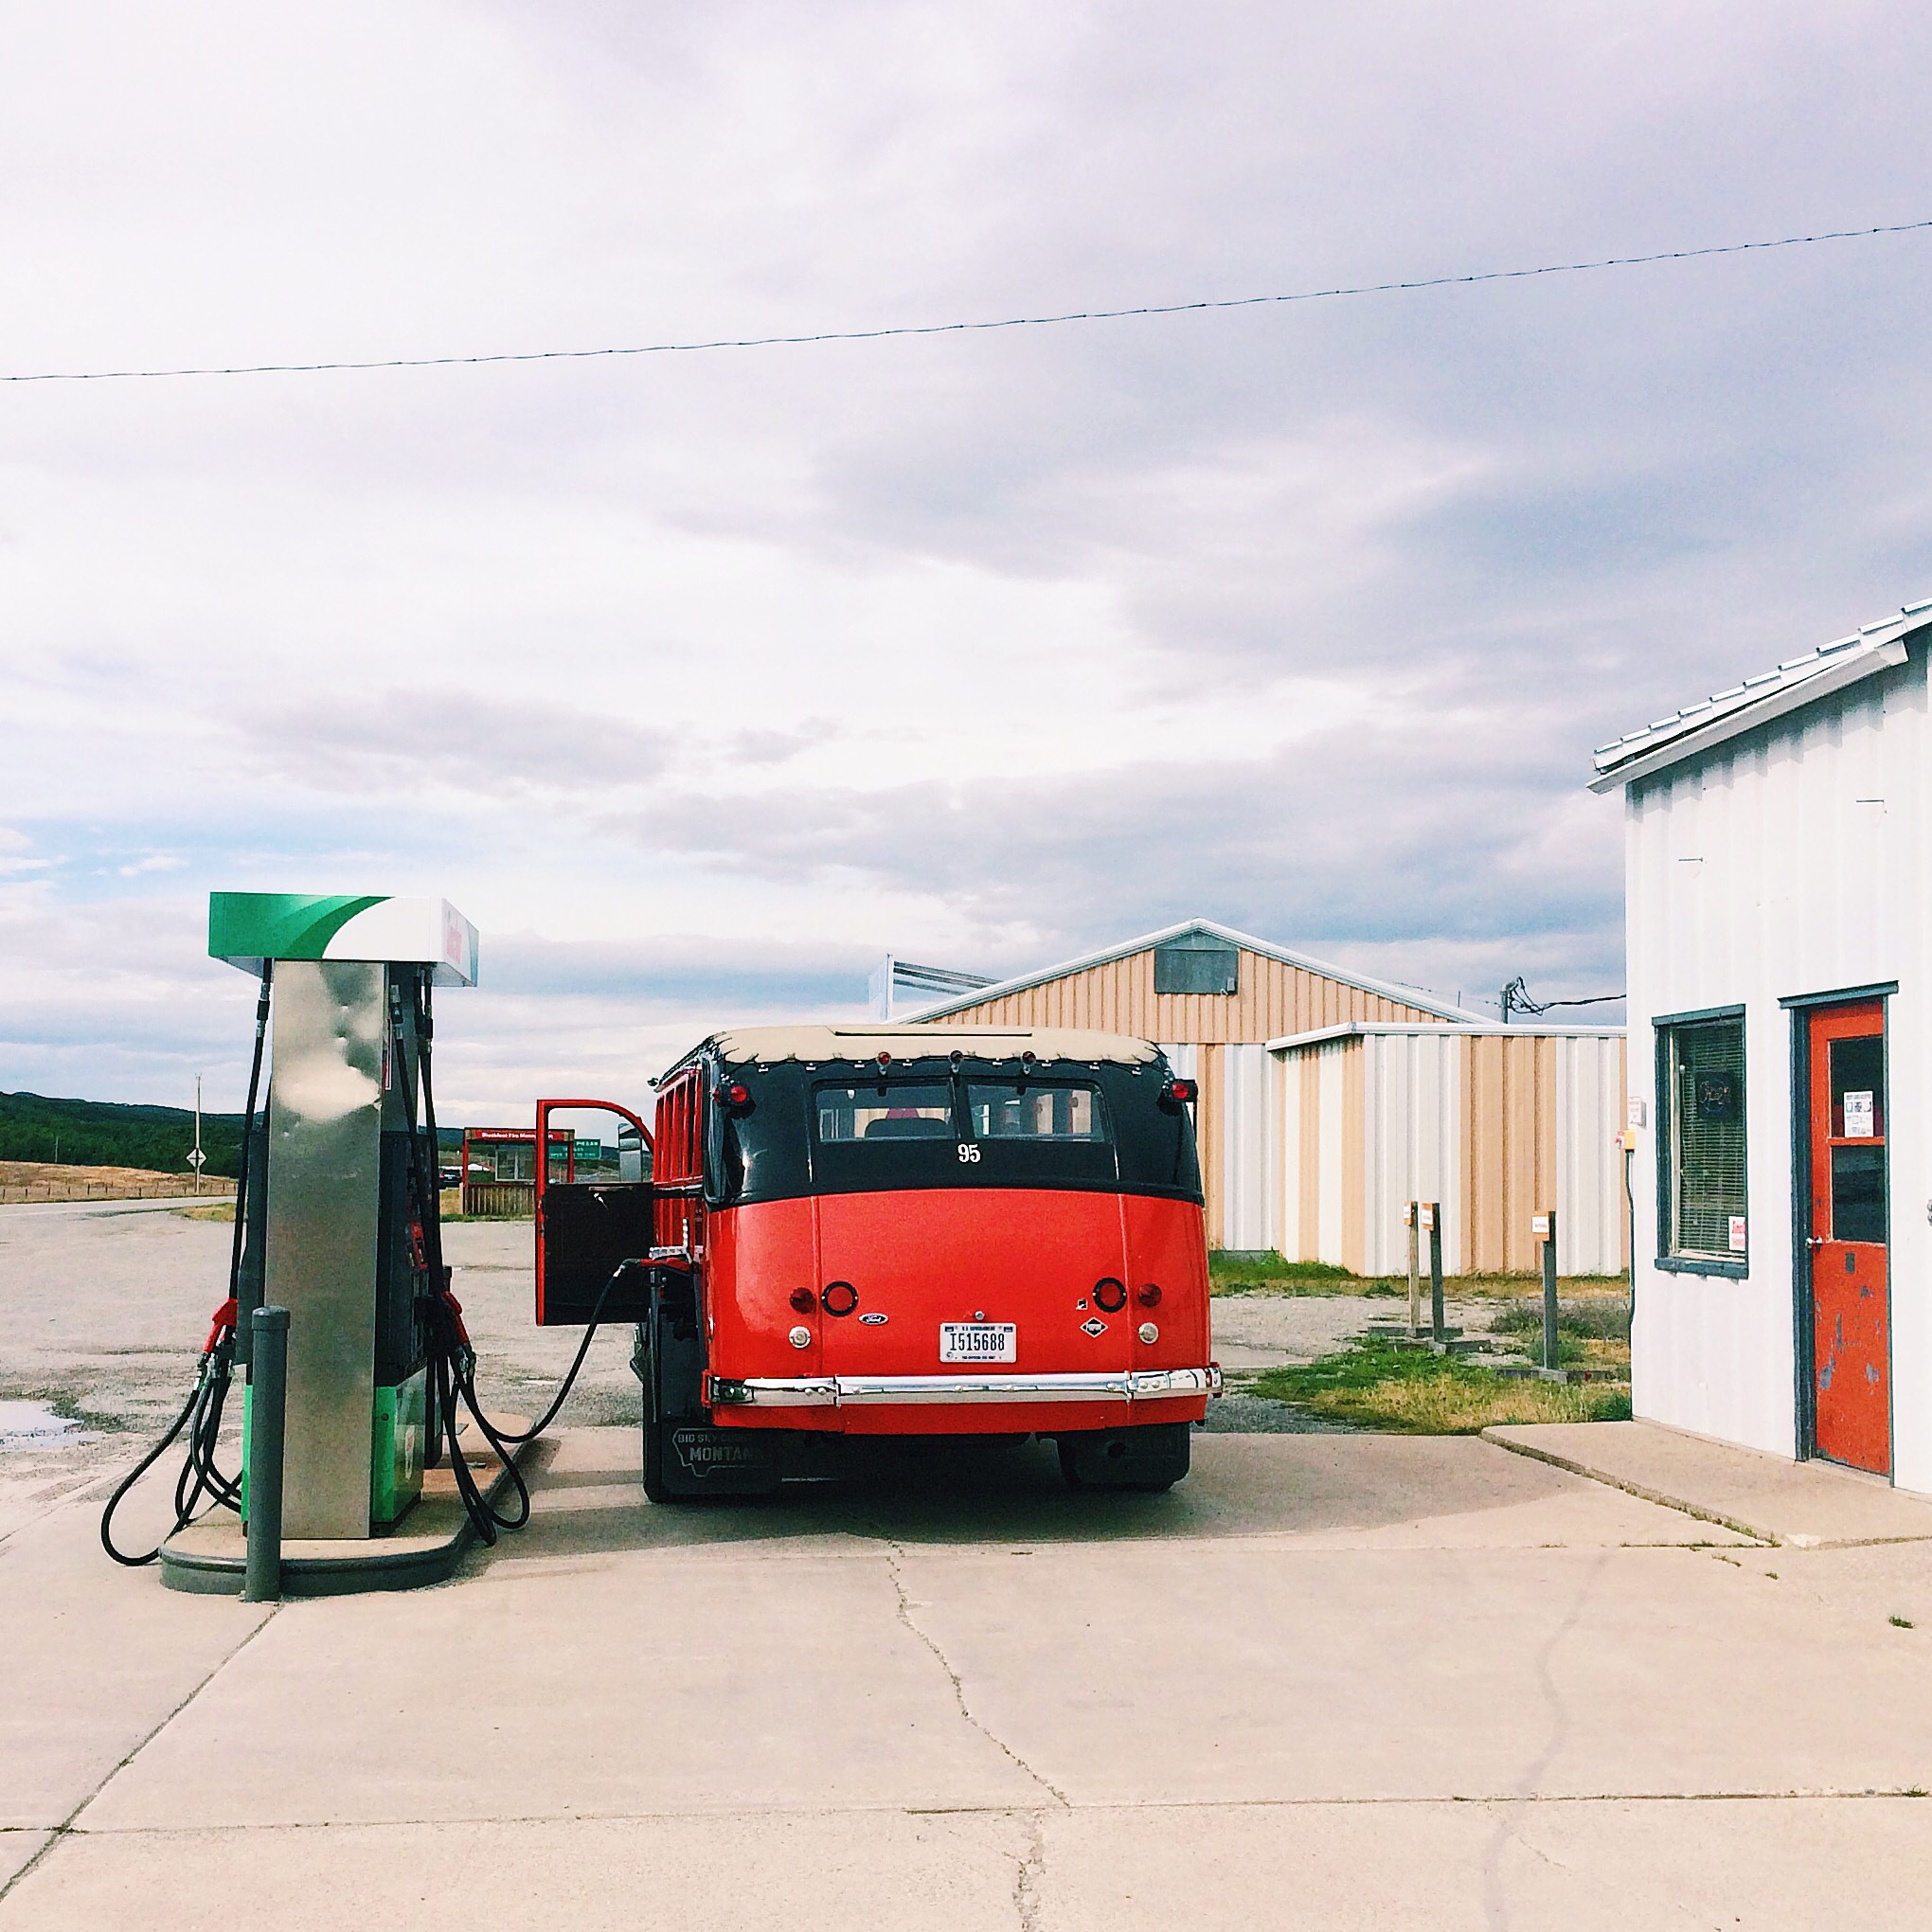 Red Jammer gassing up at Thronson's General Store in Babb, Montana